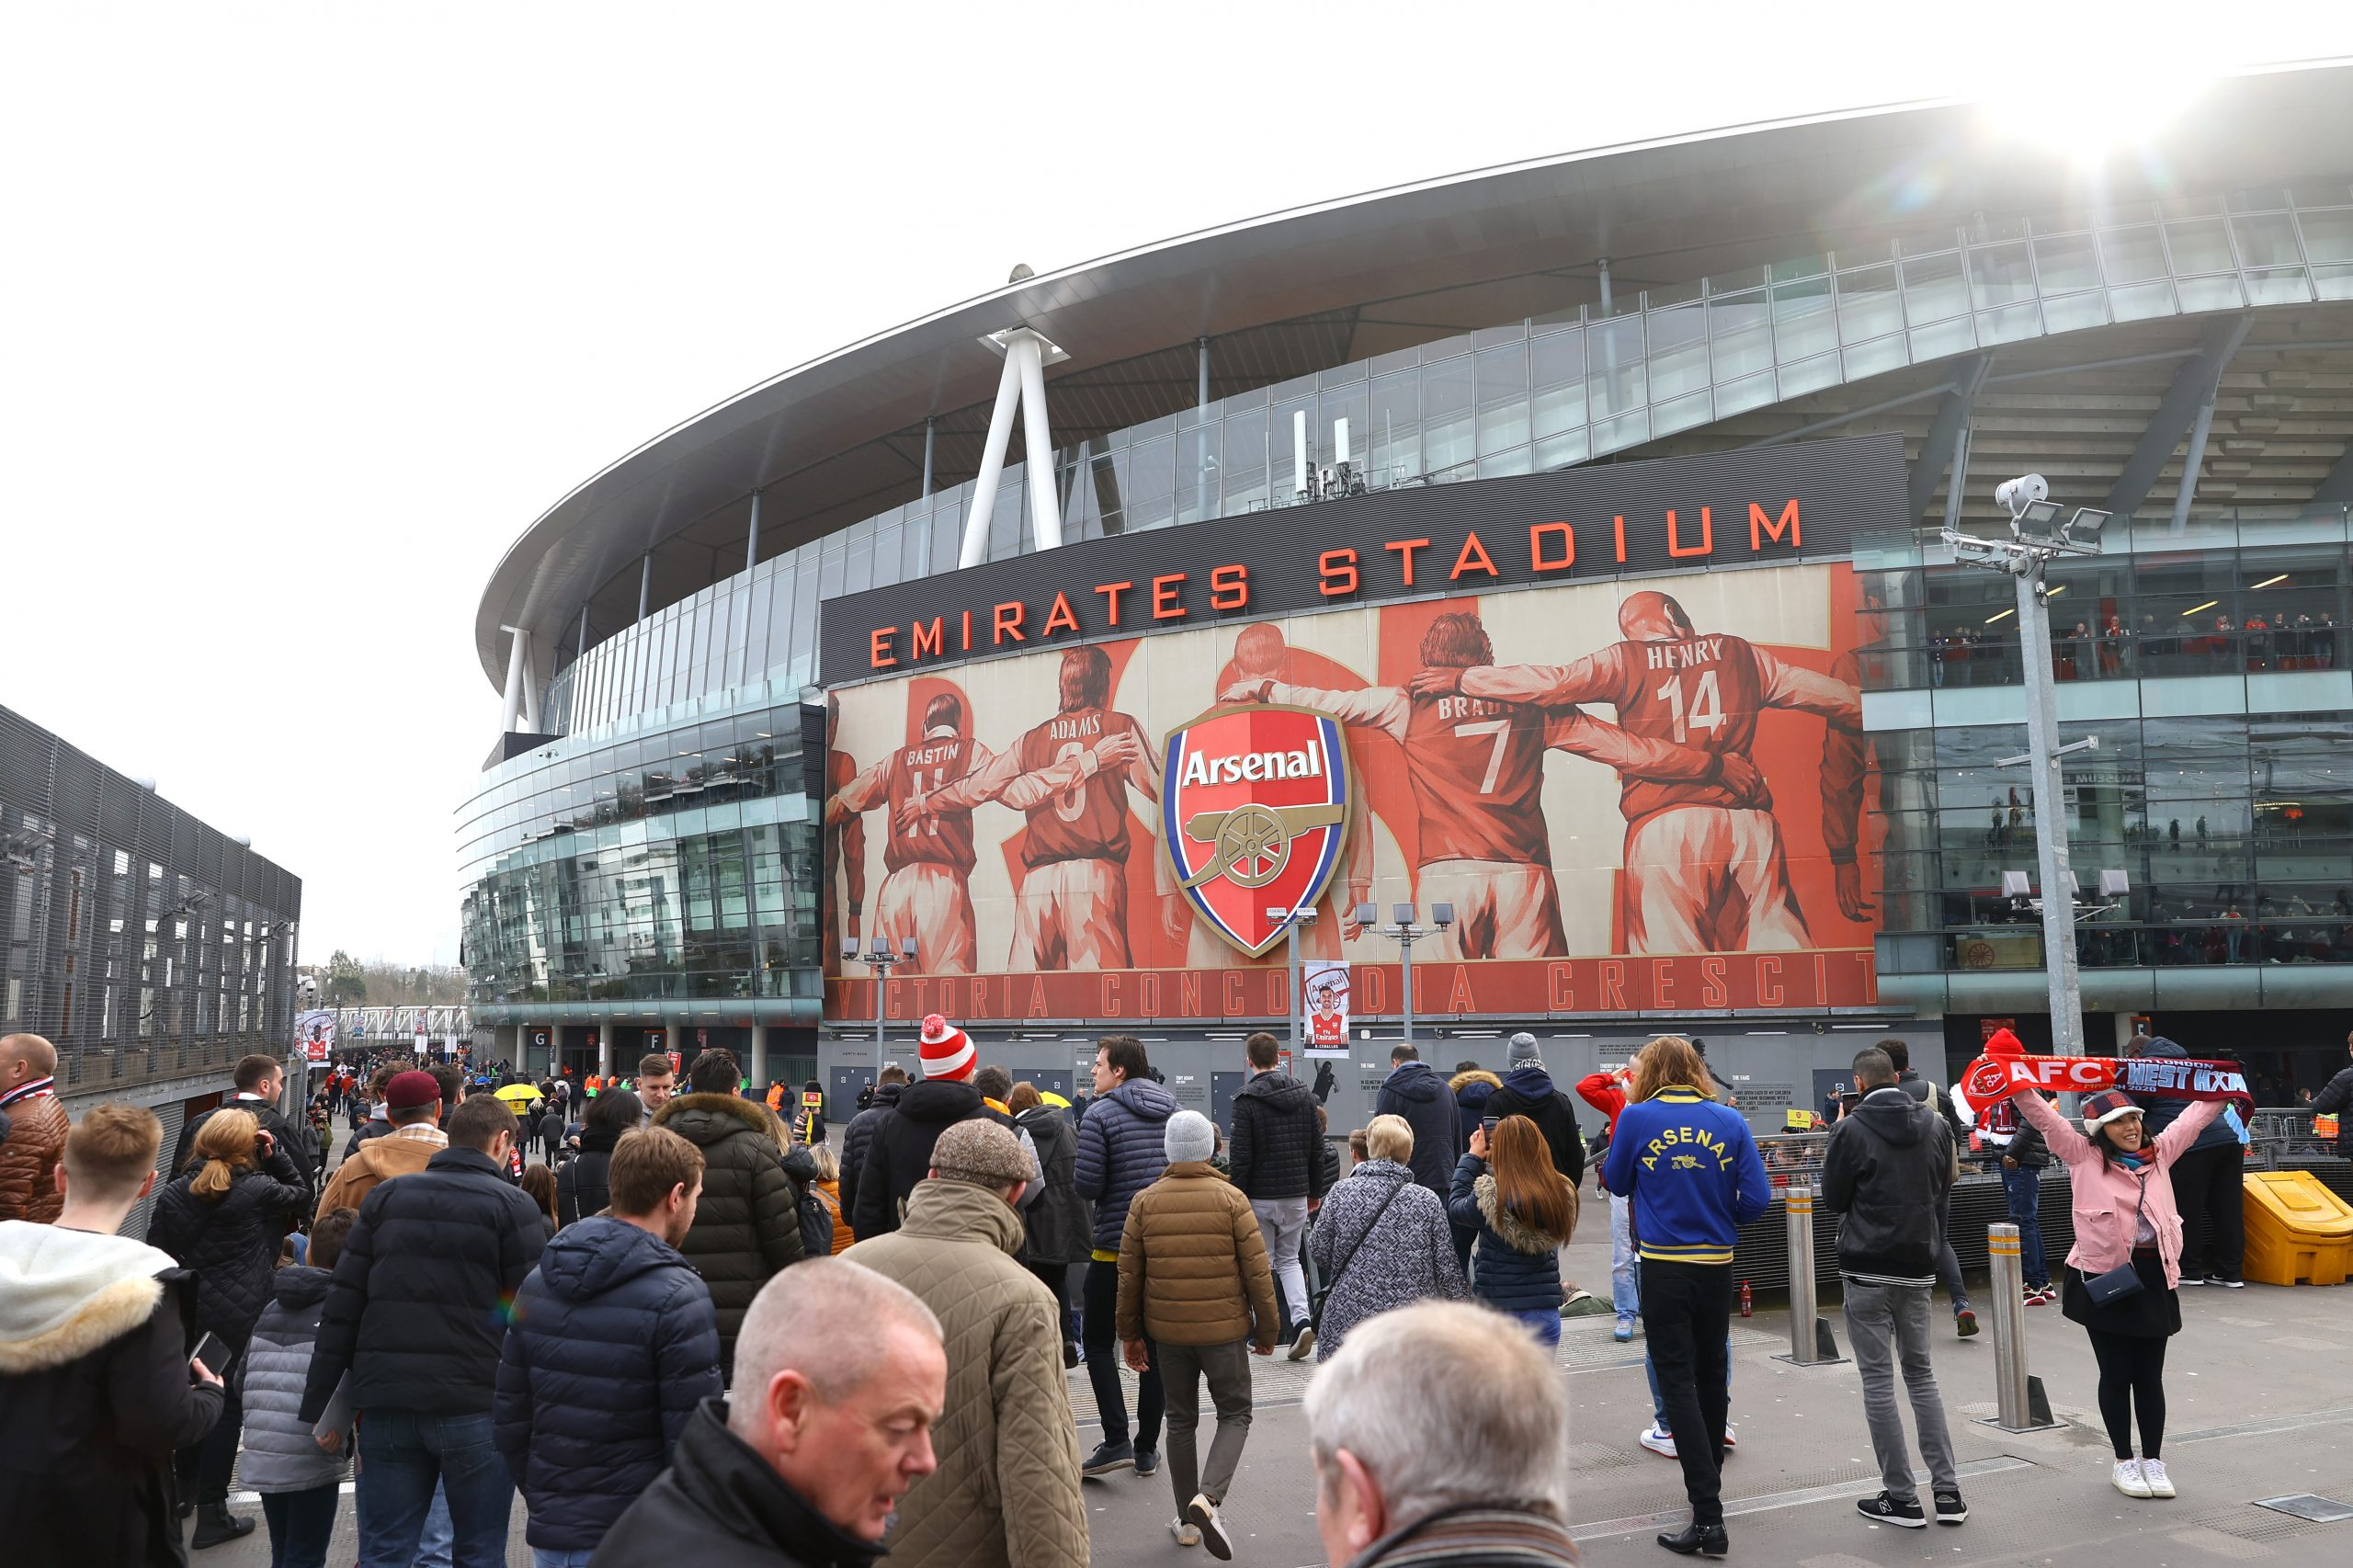 Fans make their way to the stadium prior to the Premier League match between Arsenal FC and West Ham United at Emirates Stadium on March 07, 2020 in London, United Kingdom.